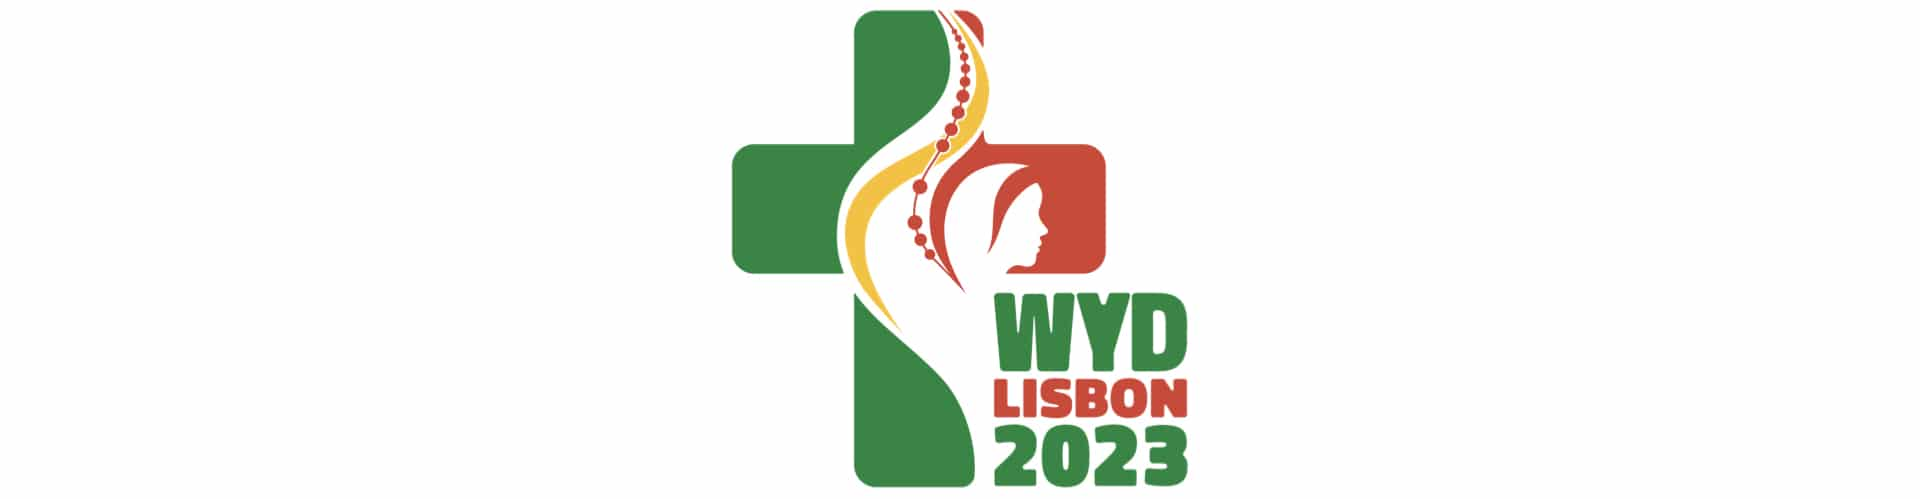 The official World Youth Day 2023 Logo